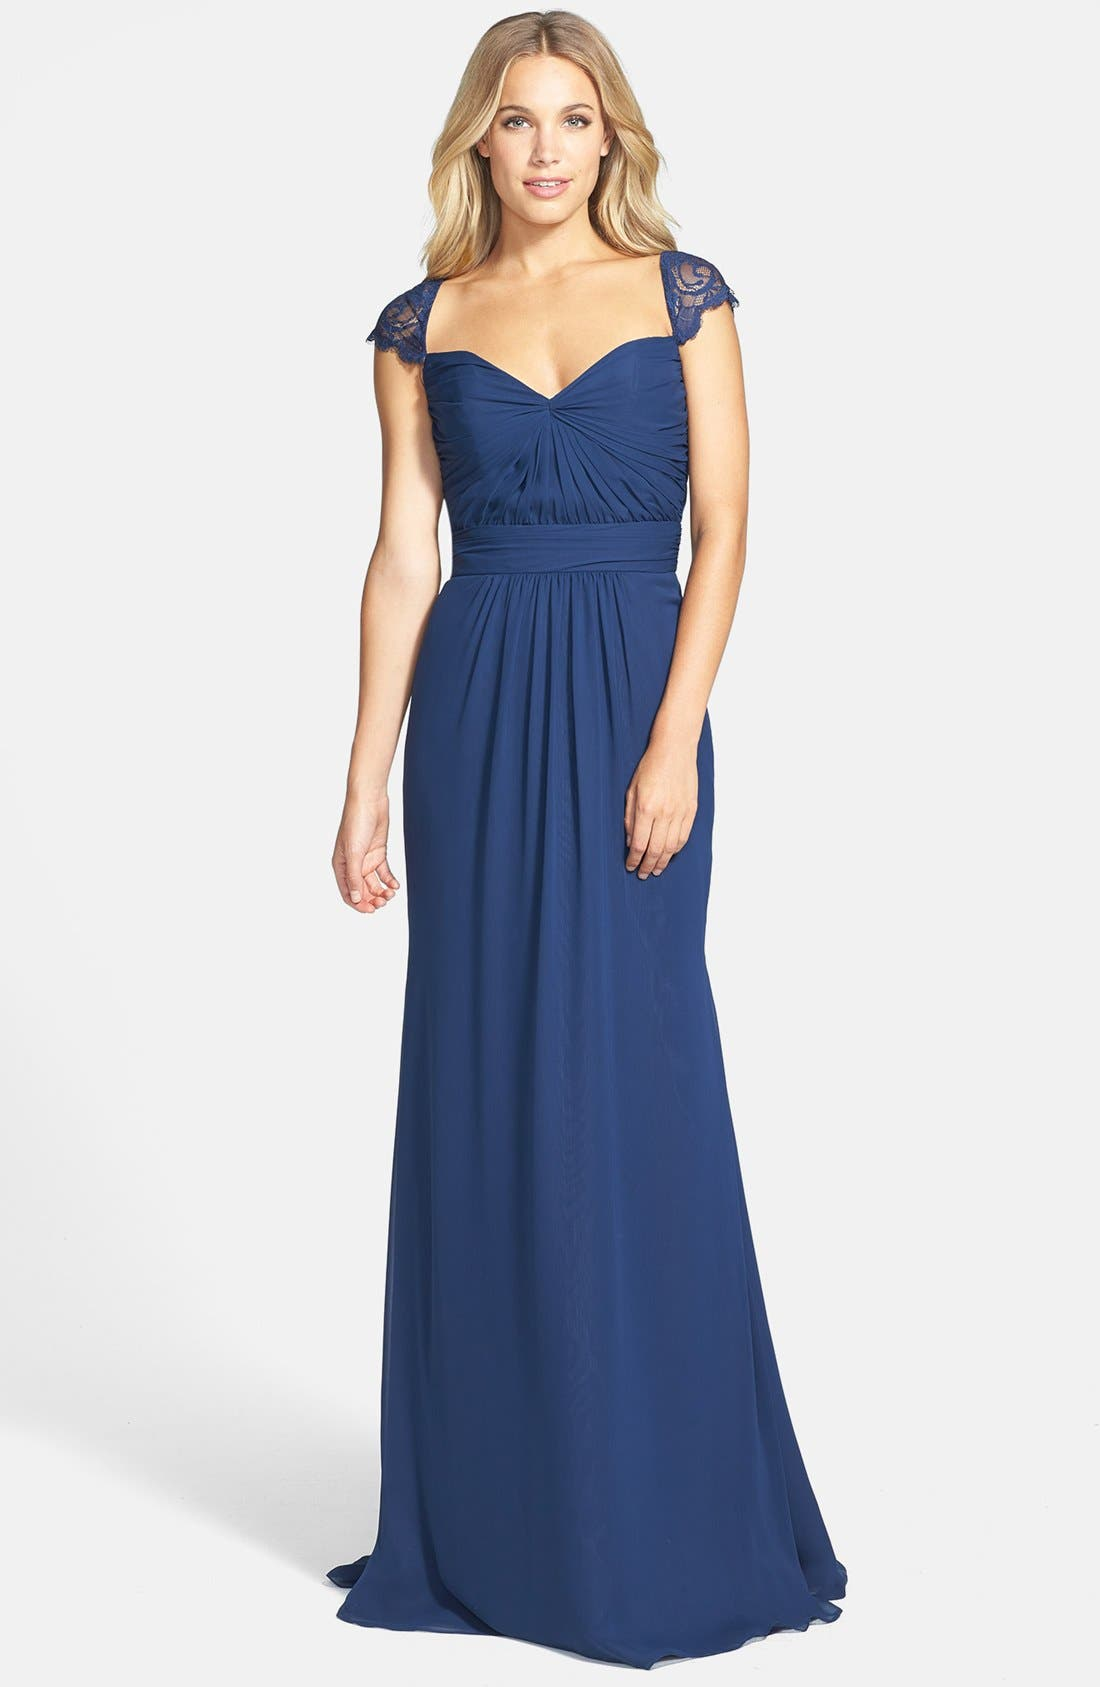 Alternate Image 1 Selected - Jim Hjelm Occasions 'Luminescent' Lace Sleeve Chiffon Gown